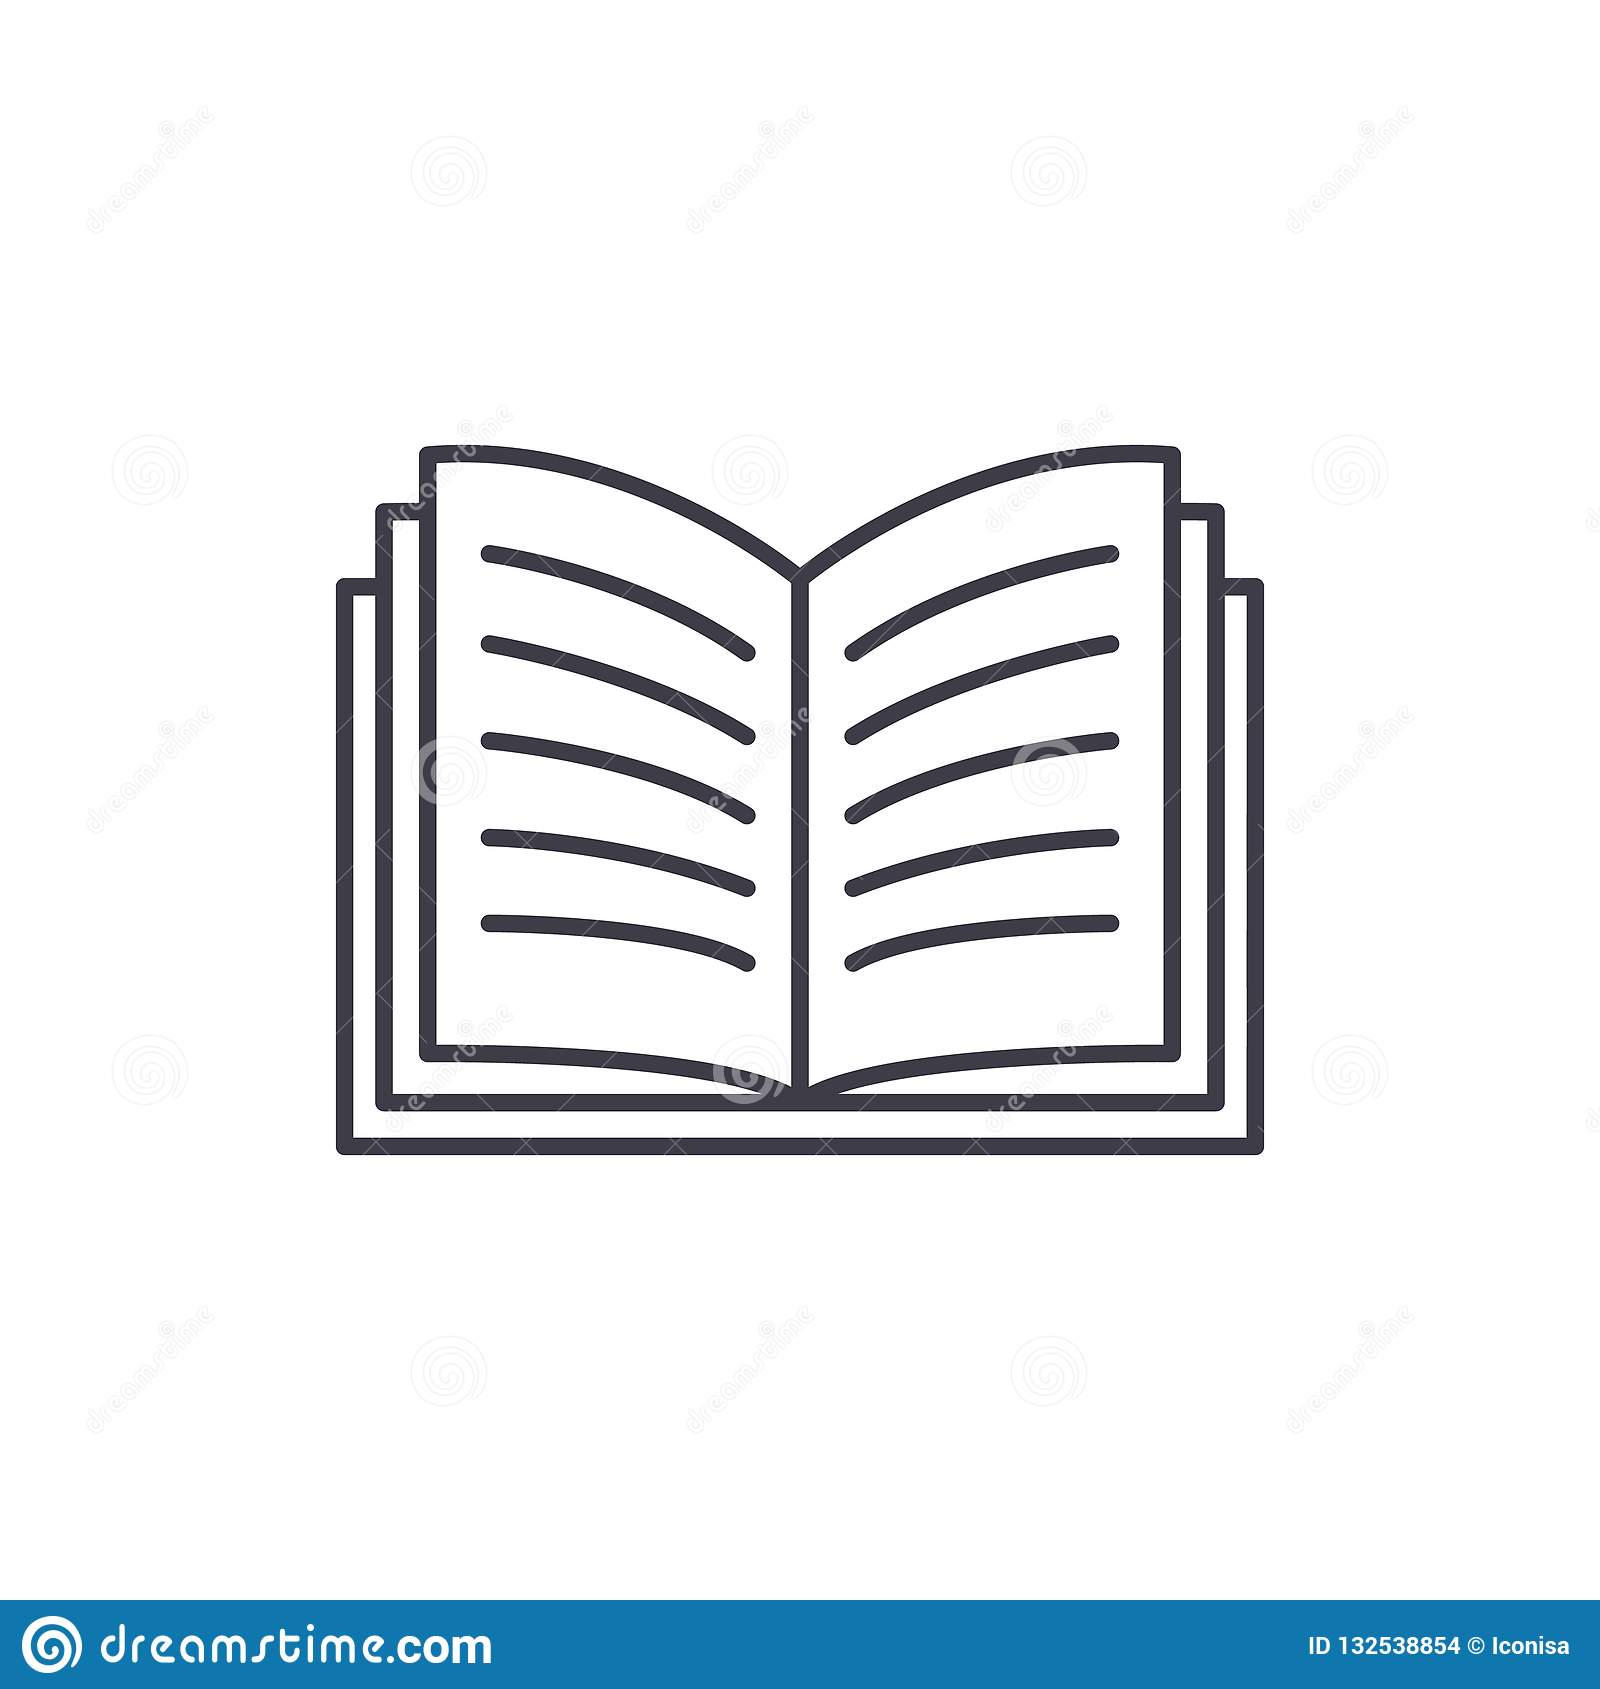 Open book line icon concept. Open book vector linear illustration, symbol, sign